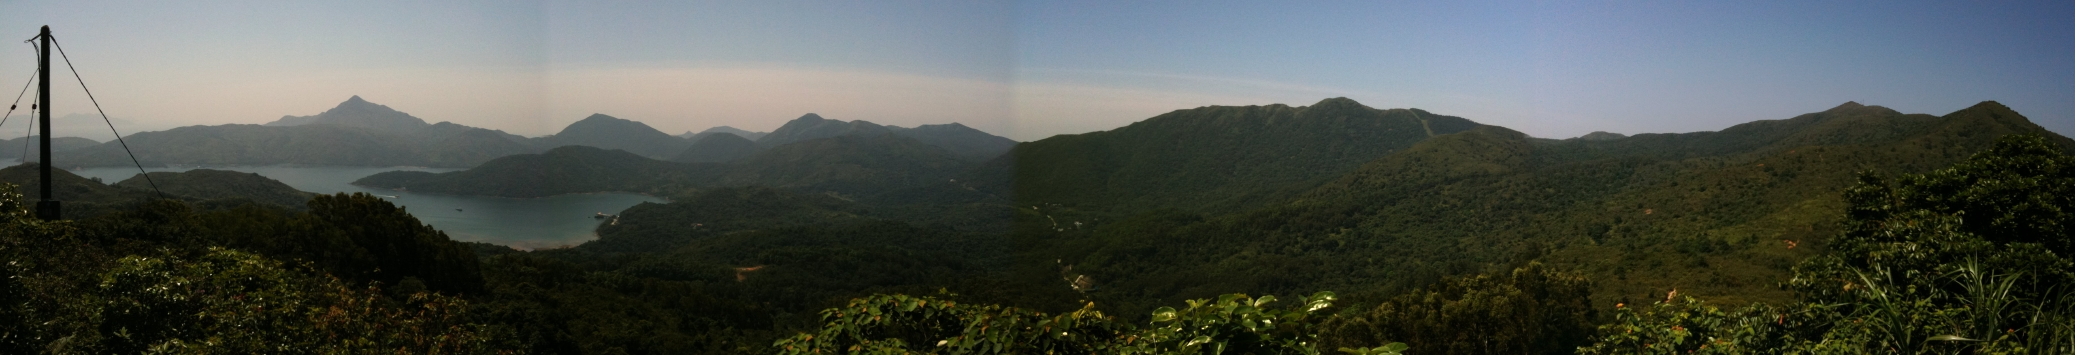 Fire Lookout Panorama 2